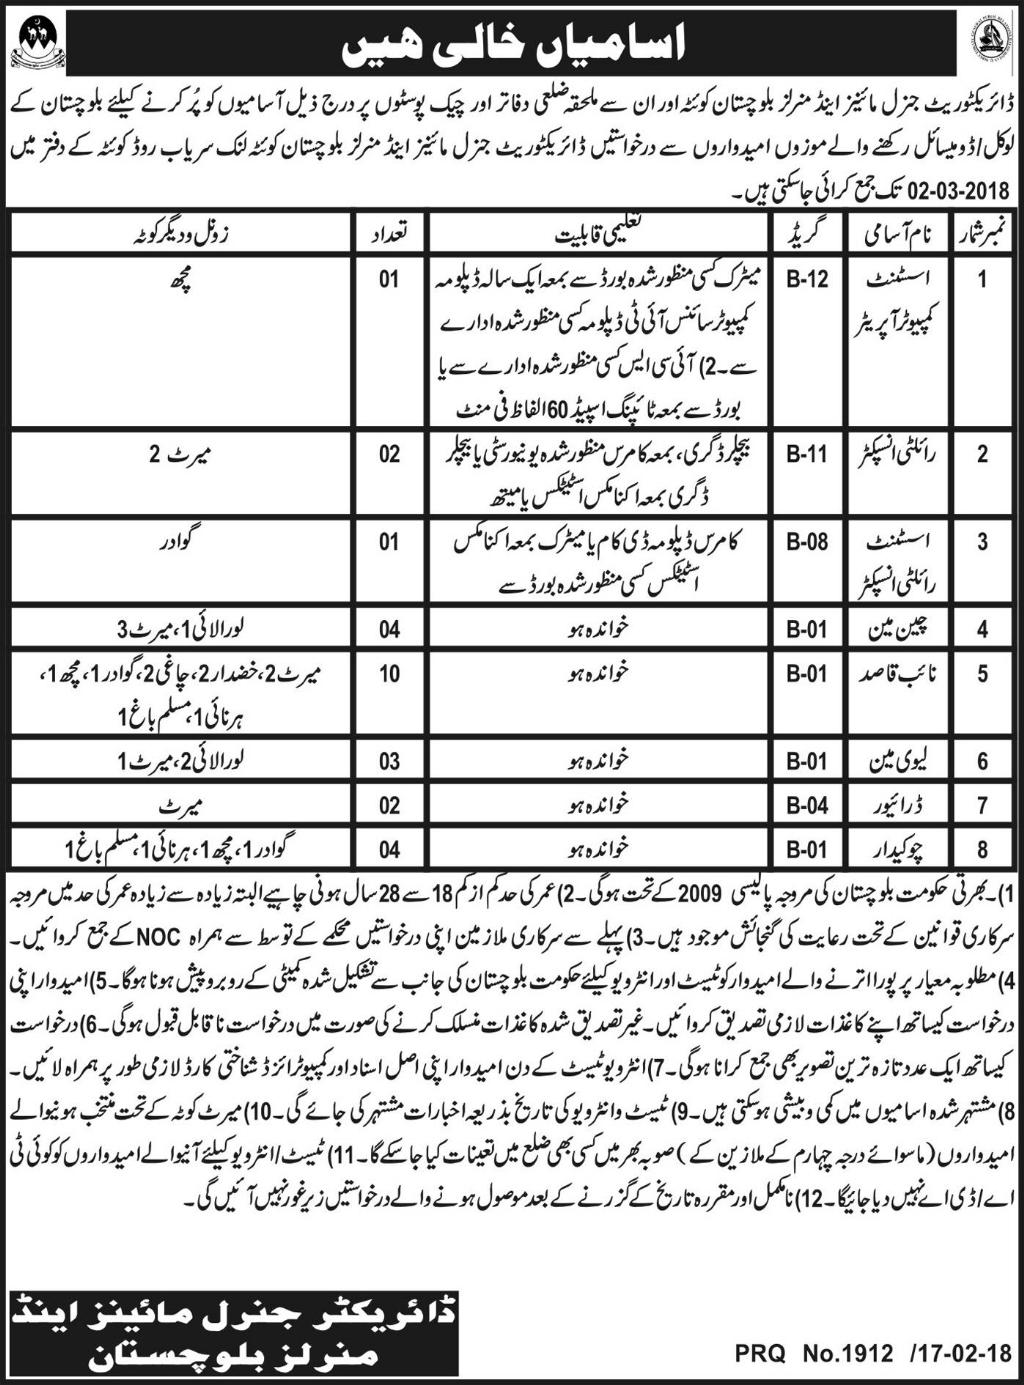 Mines and Mineral Department Quetta 27 Jobs 18 February 2018 Daily Express Newspaper.